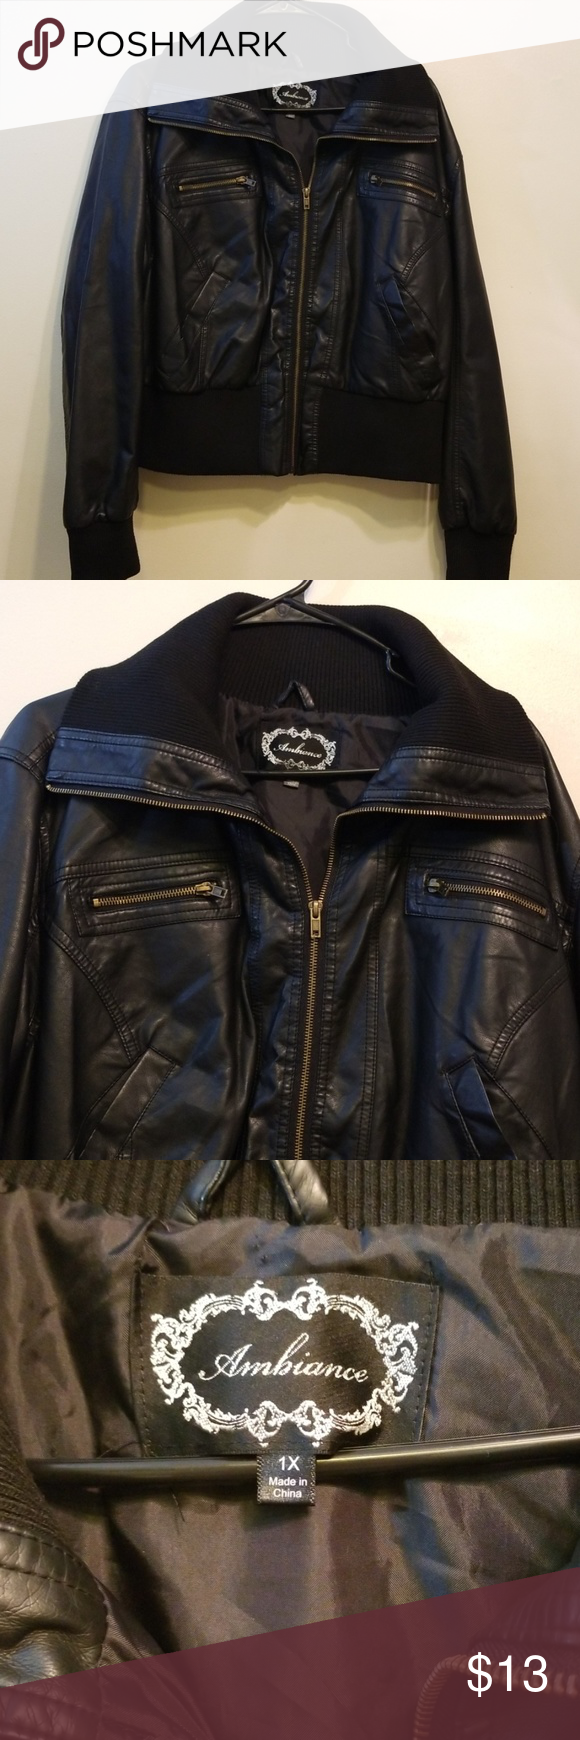 Ambiance Jacket Ambiance 1x Leather Look Alike Semi Heavy Jacket With Fold Down Top And Zipper Pockets Ambiance Jackets C Jackets Heavy Jacket Women Shopping [ 1740 x 580 Pixel ]